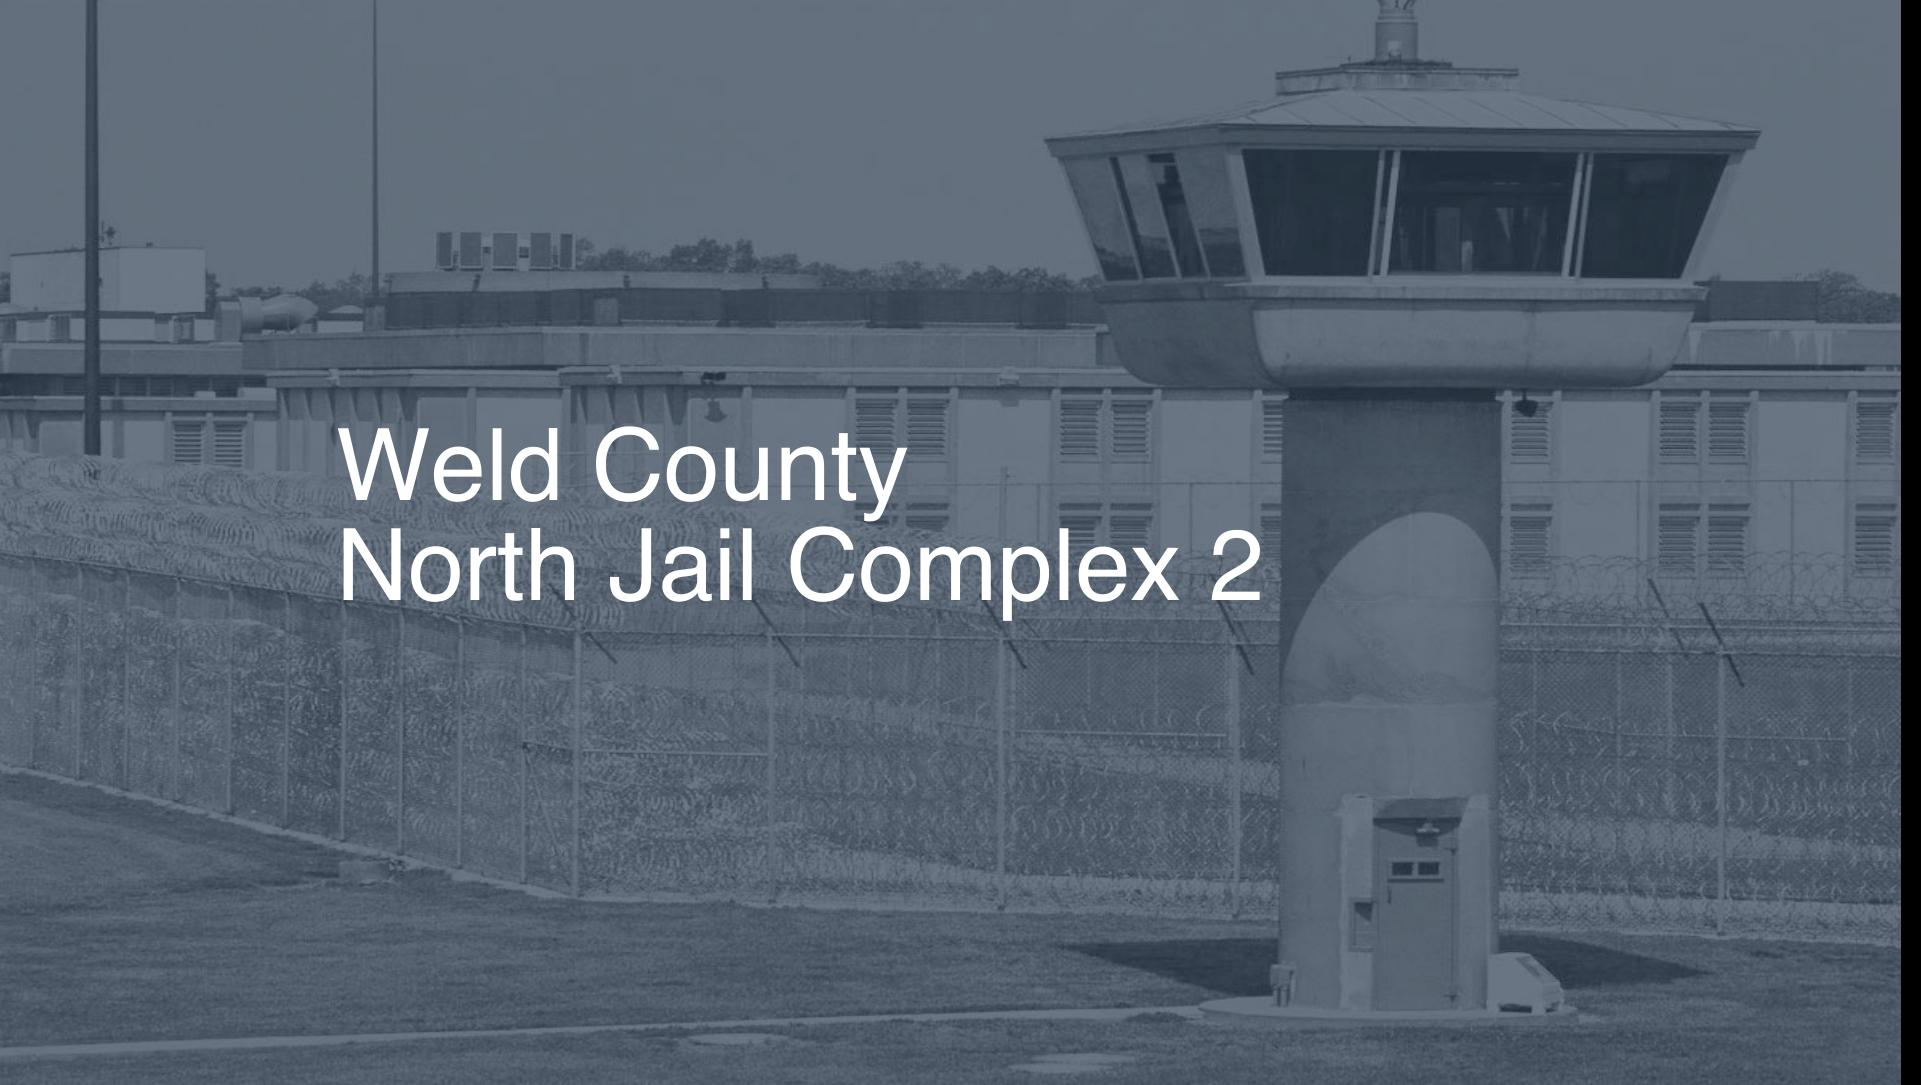 Weld County North Jail Complex Inmate Search, Lookup & Services